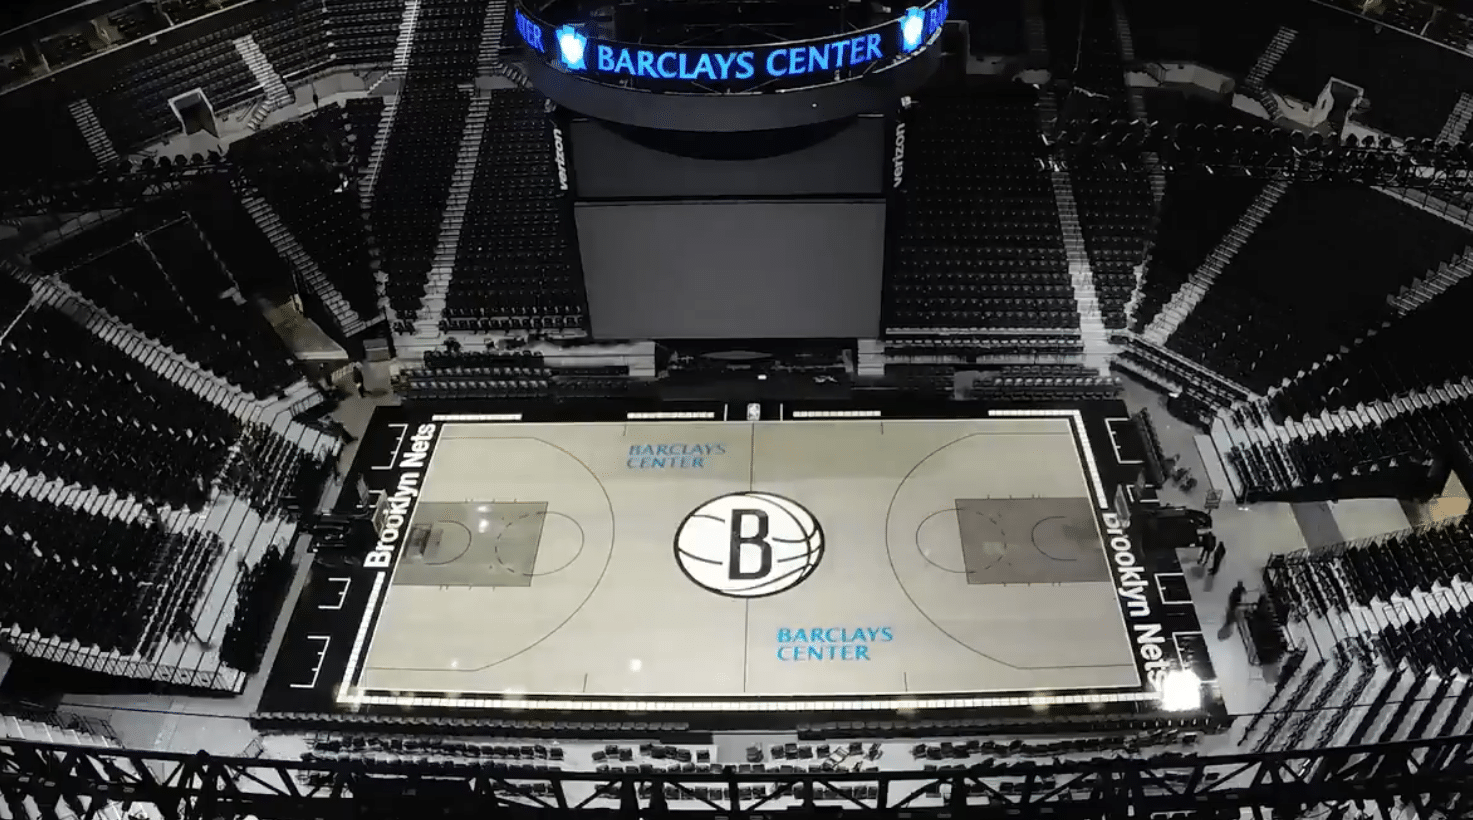 Brooklyn Nets' Gray Court